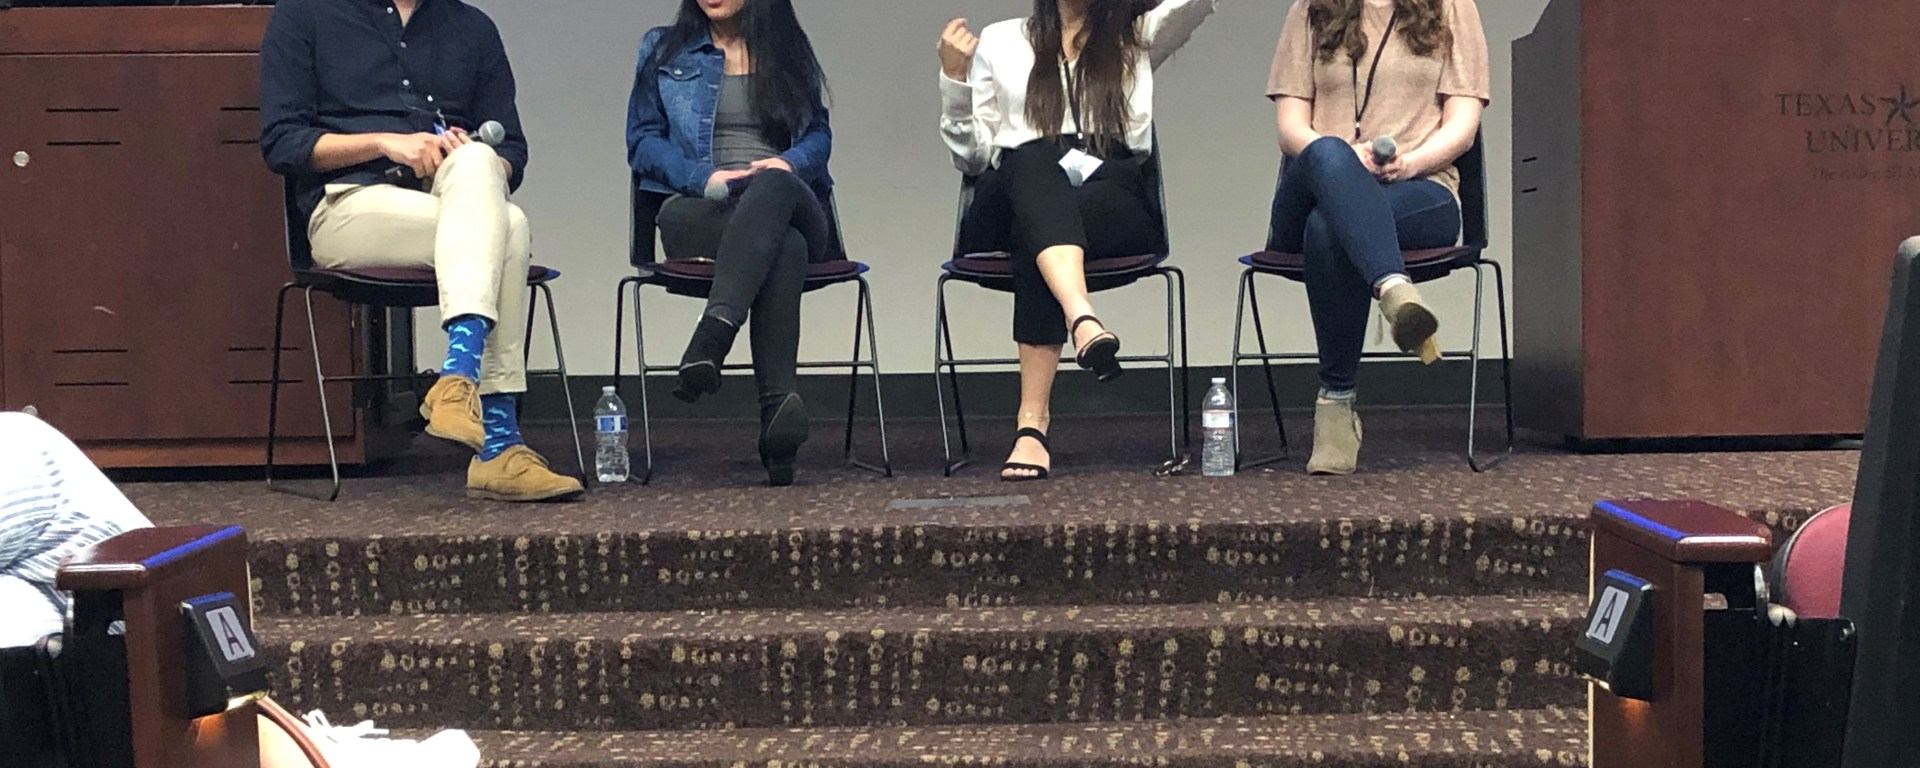 1 man and 3 women sit left to right in front of a auditorium of students on a stage.